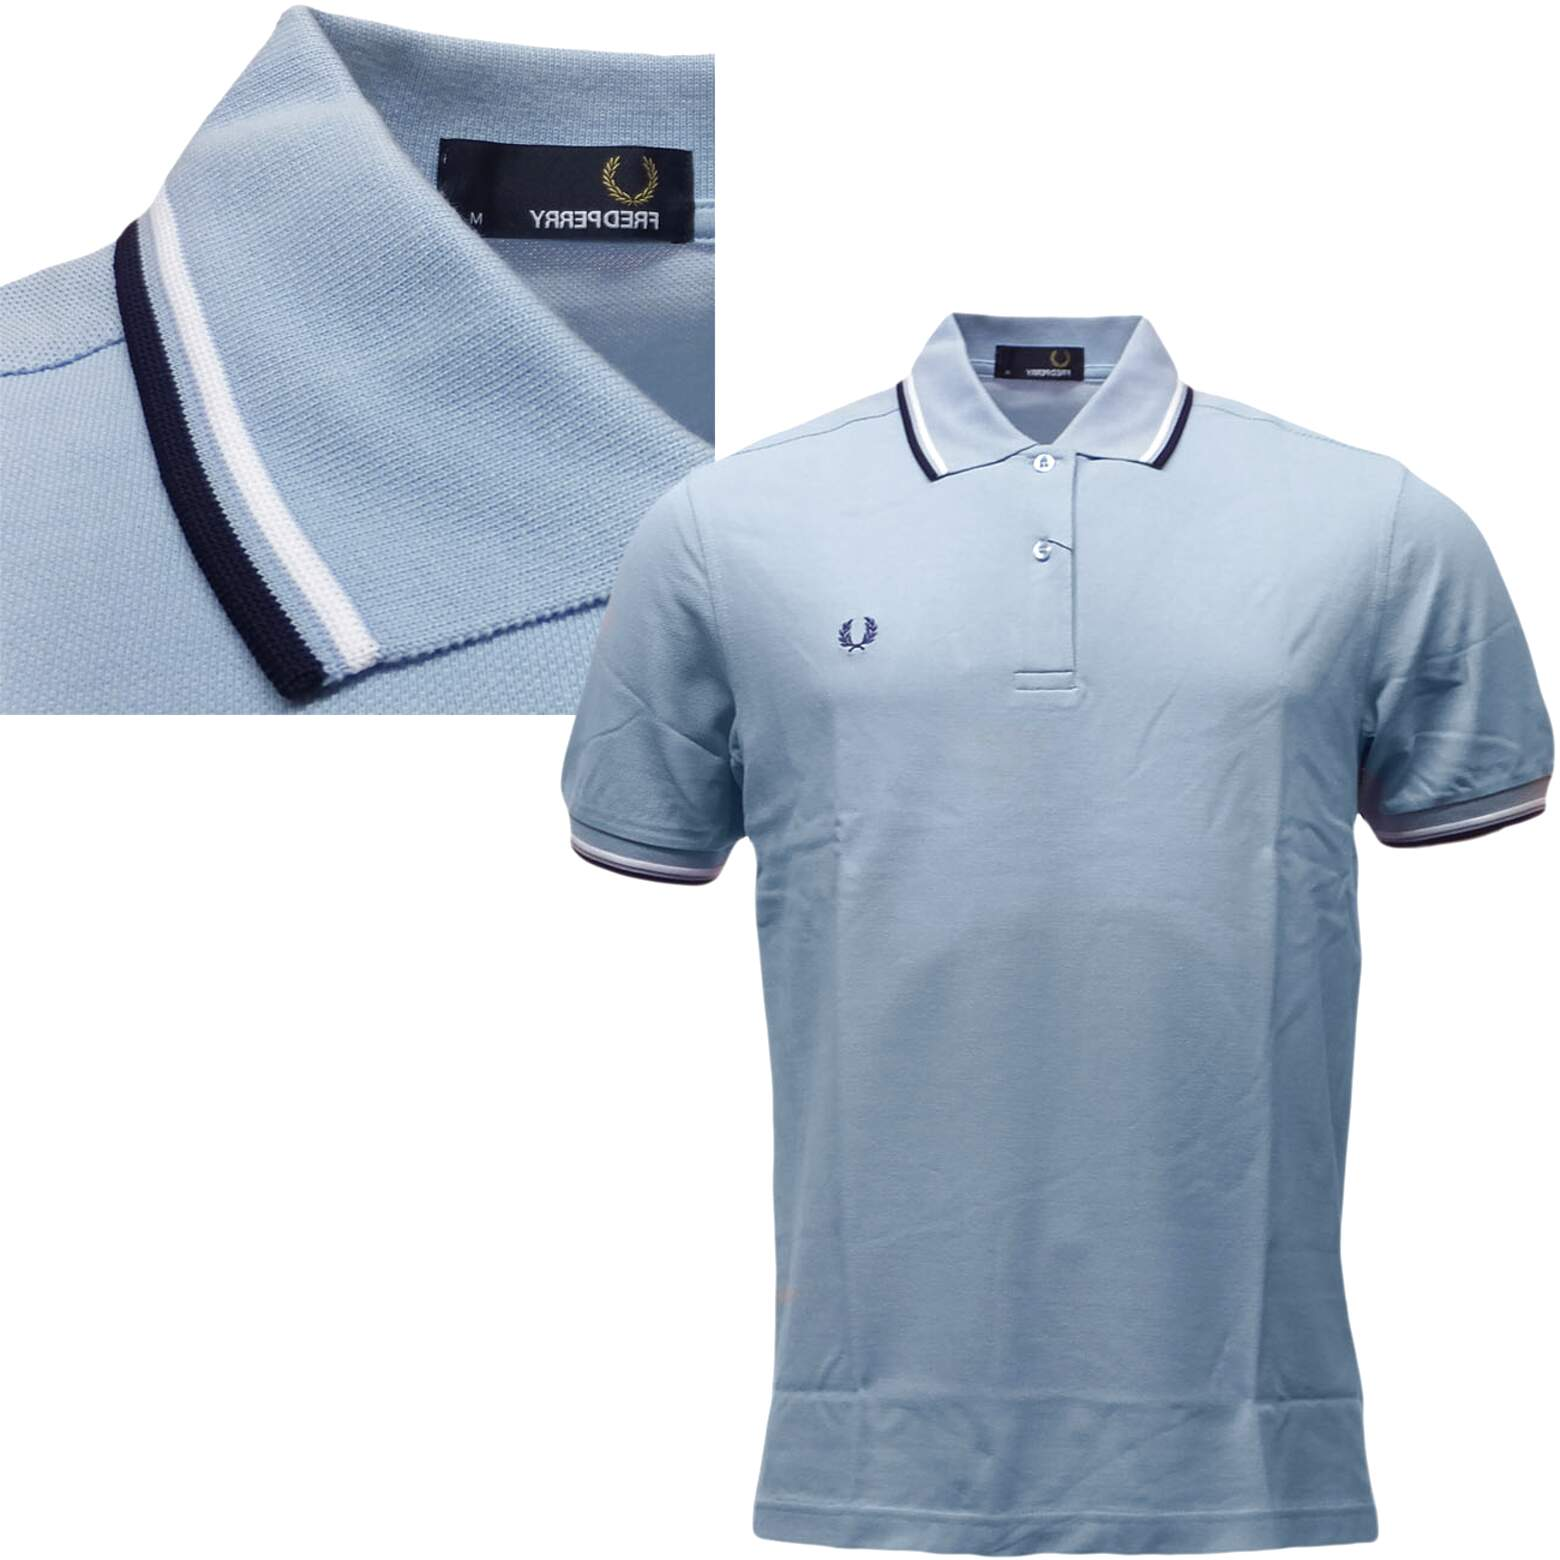 Fred Perry Shirt Xxl for sale in UK | View 67 bargains